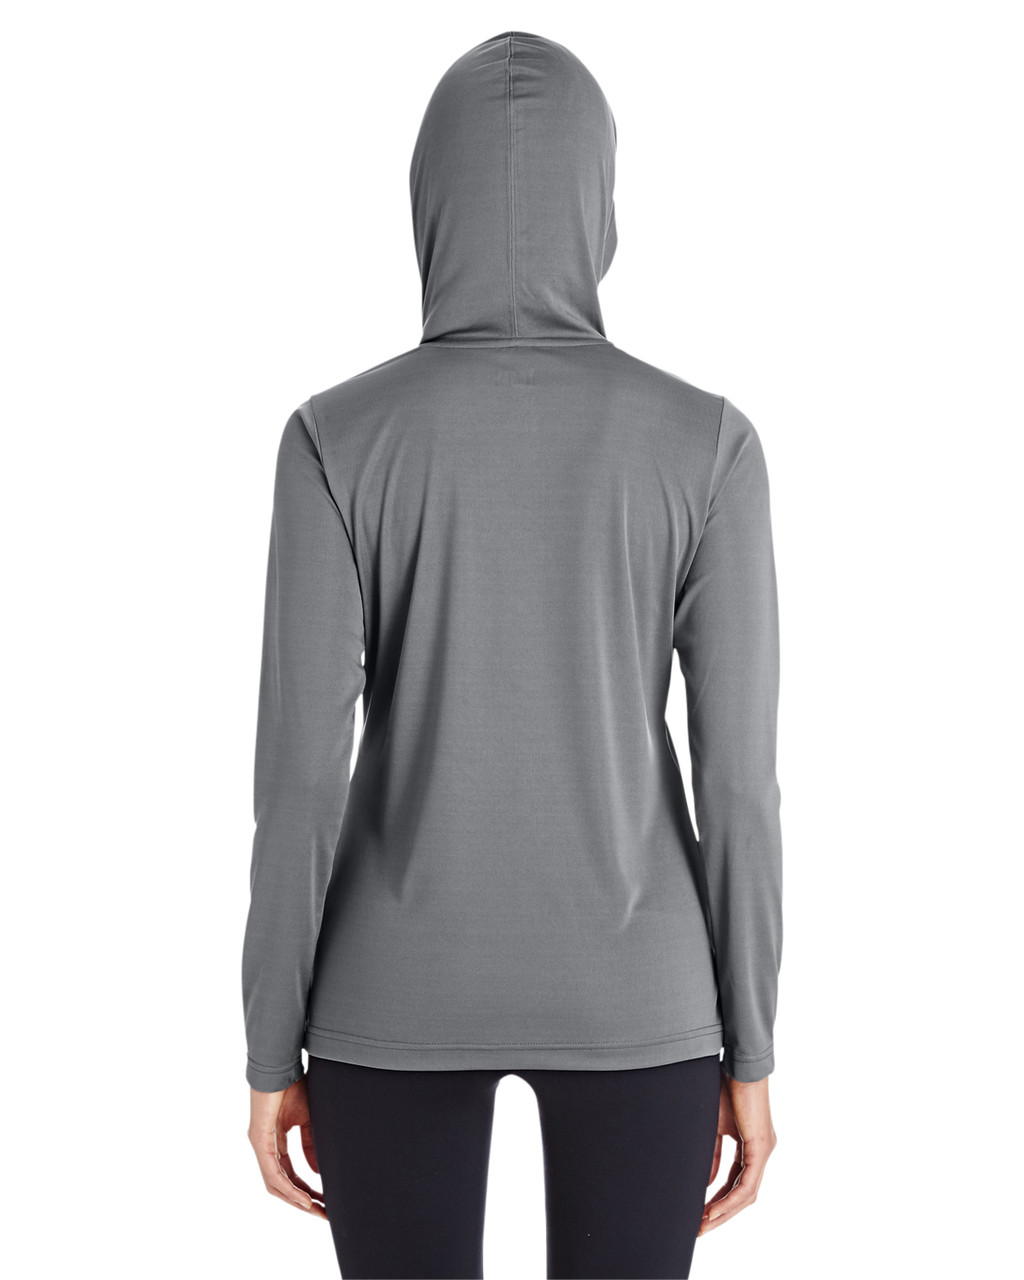 Sport Graphite - TT41W Team 365 Ladies' Zone Performance Hoodie